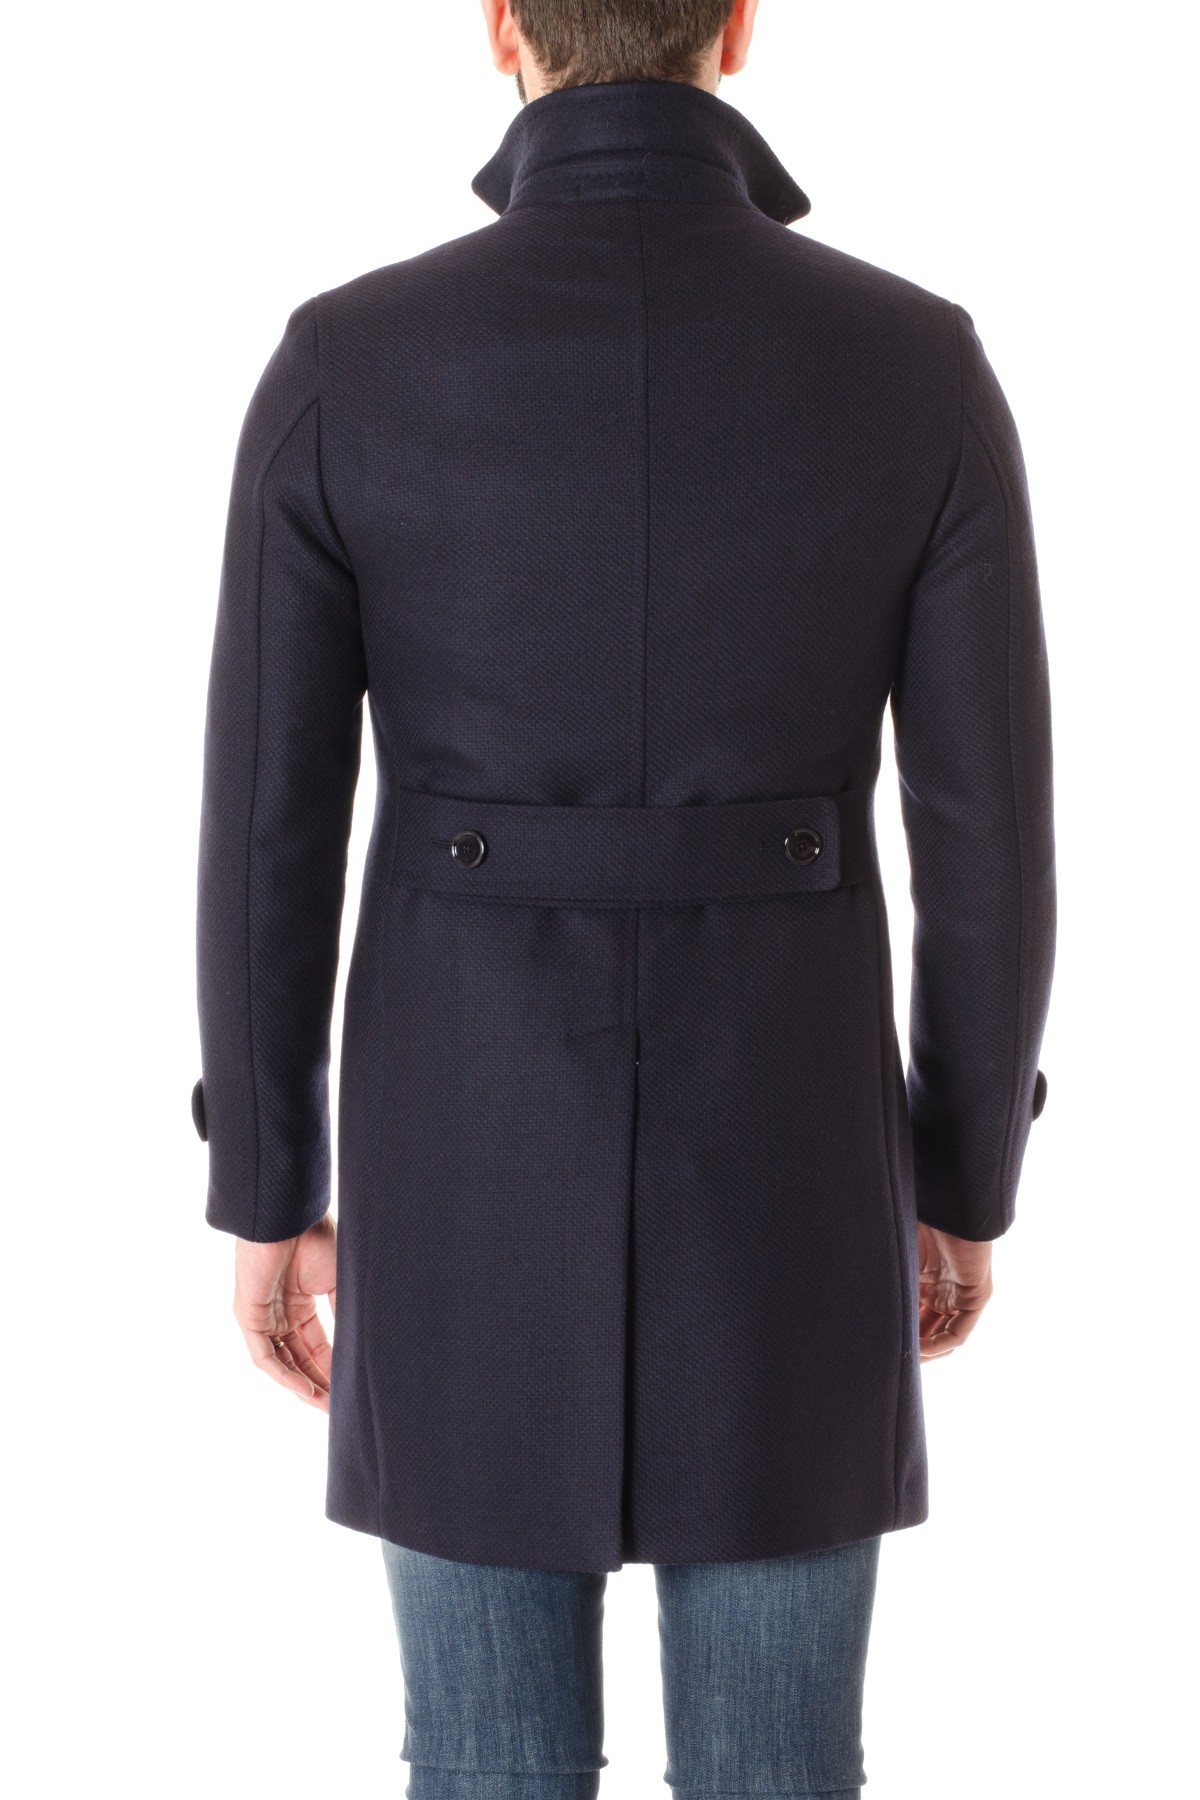 Find great deals on eBay for navy blue coat men. Shop with confidence.